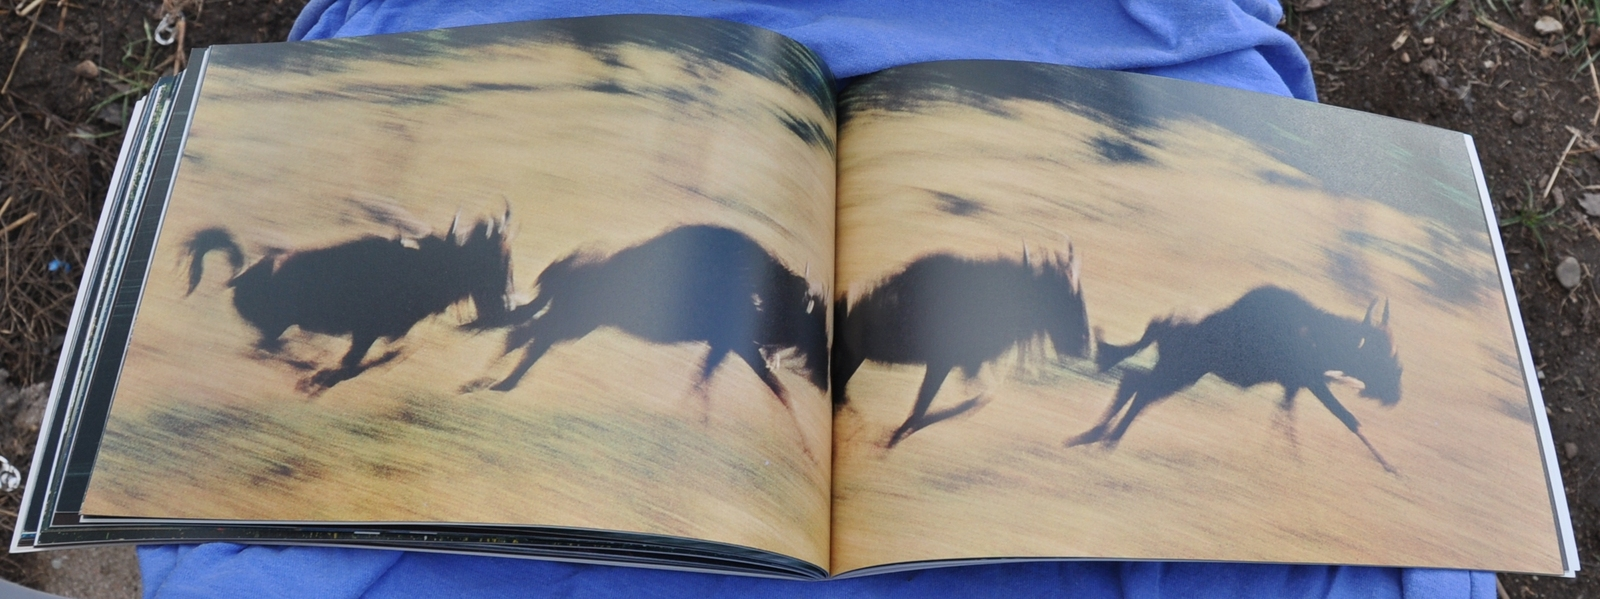 VINTAGE Bk- The Creation - Ernest Haas- Nature Photography interpreting Creation